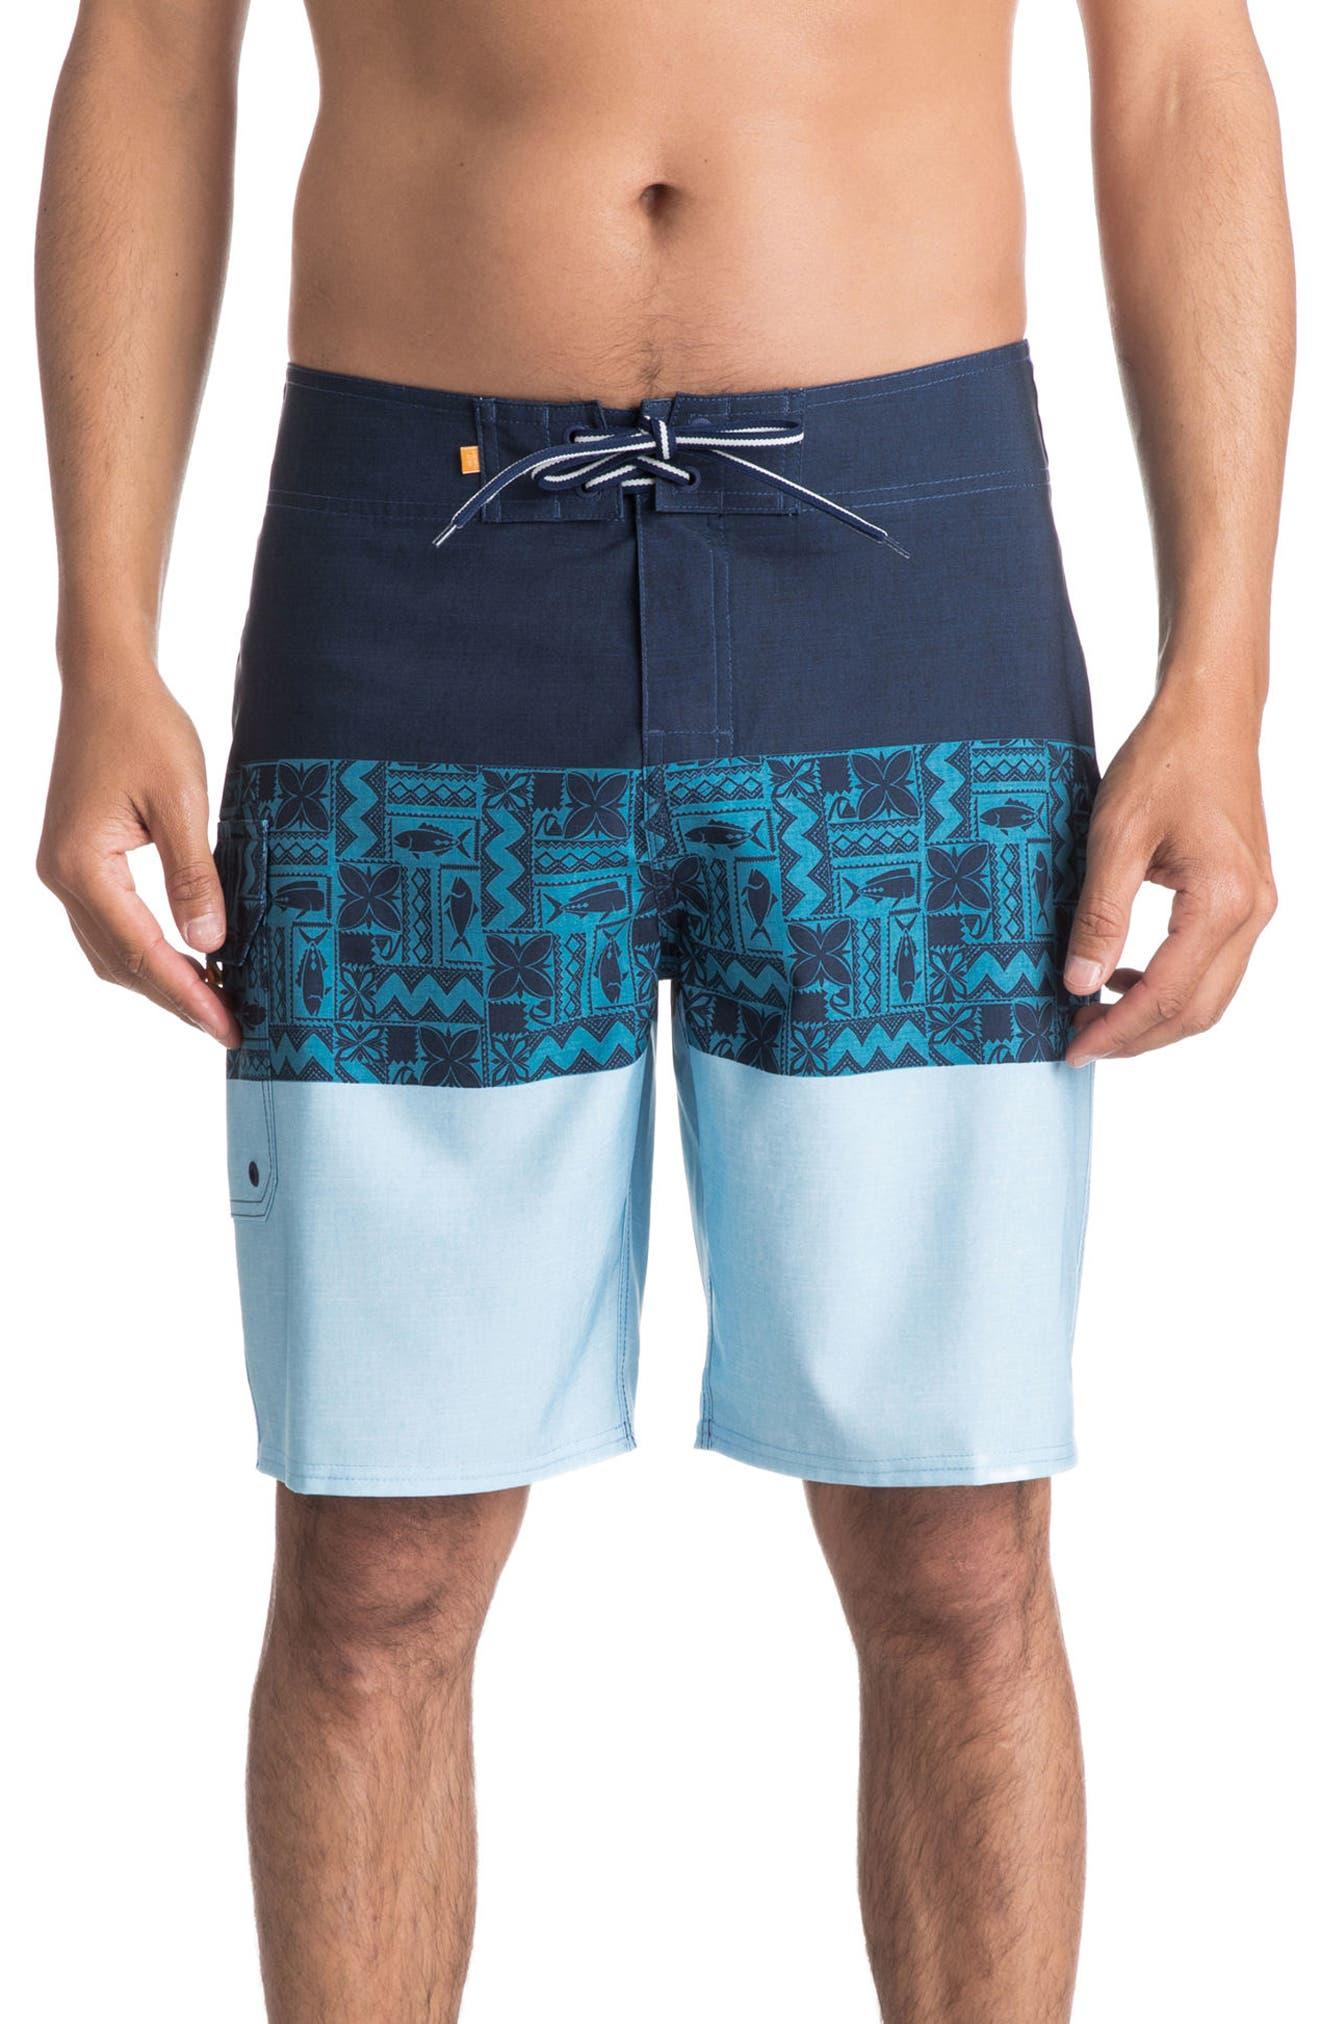 Fairway Triblock Board Shorts,                             Main thumbnail 1, color,                             401